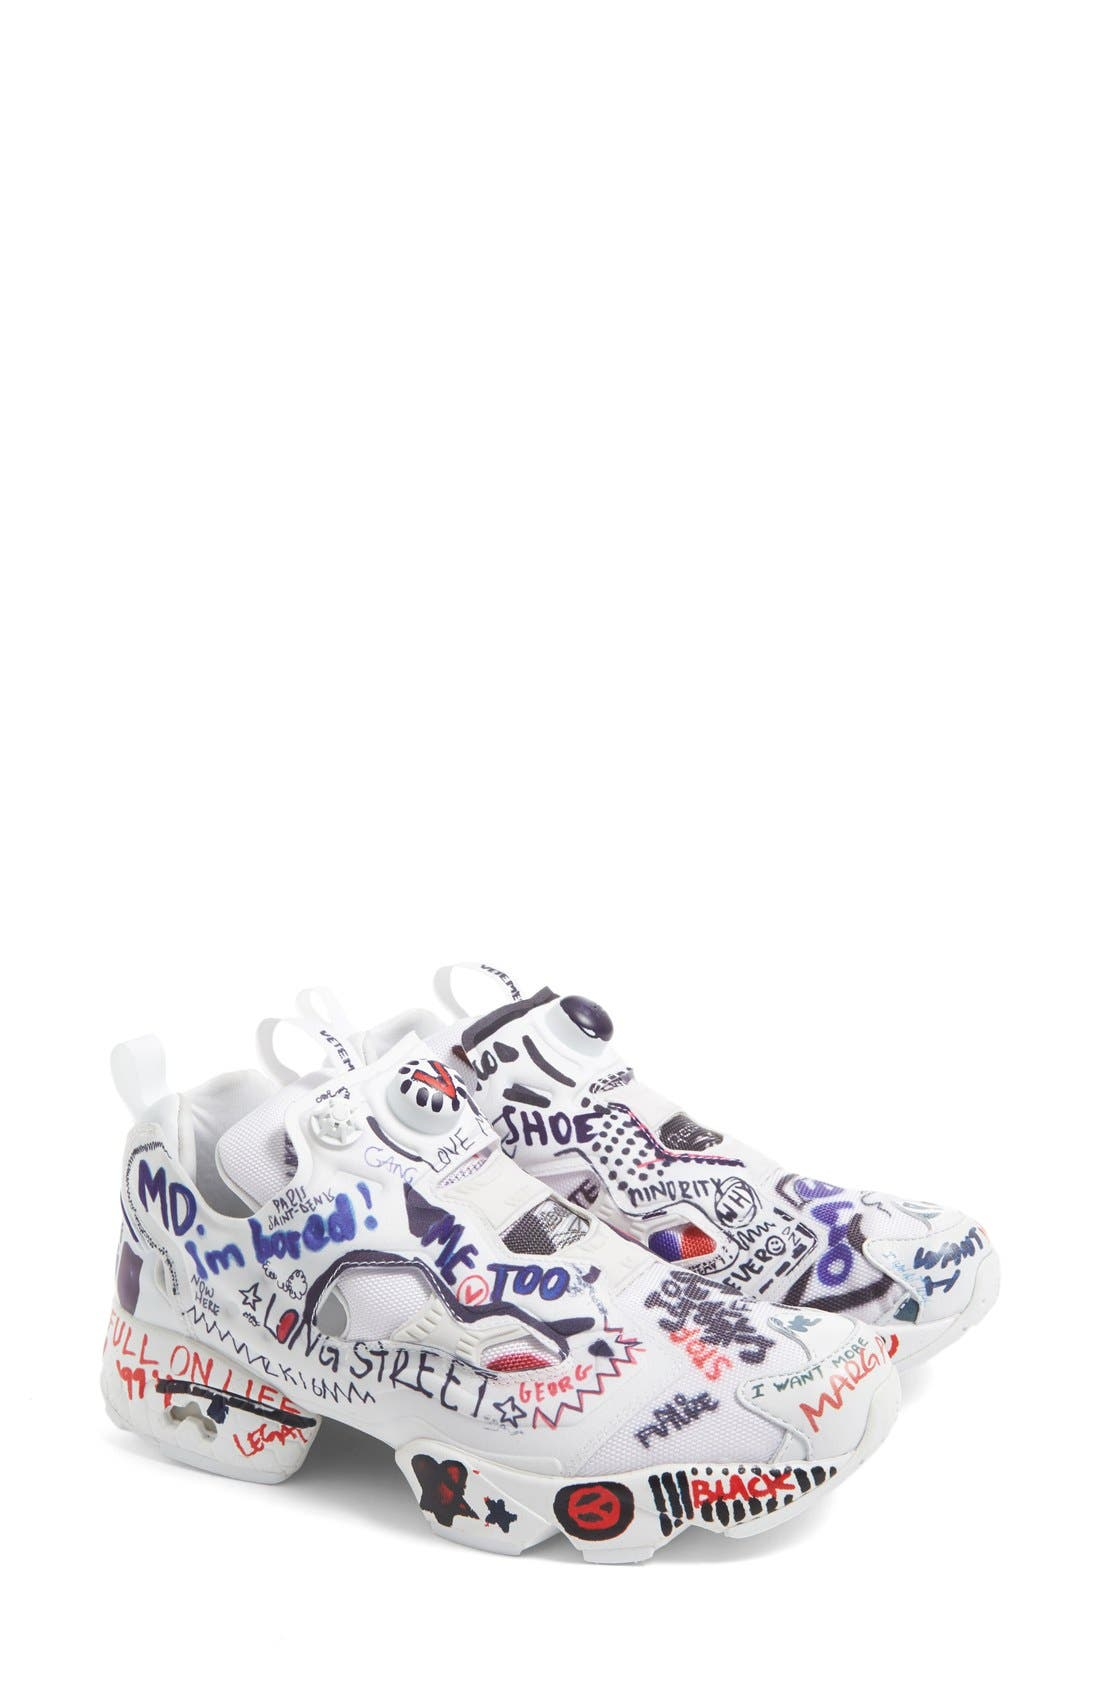 Main Image - Vetements x Reebok Graffiti Instapump Fury Sneaker (Women)